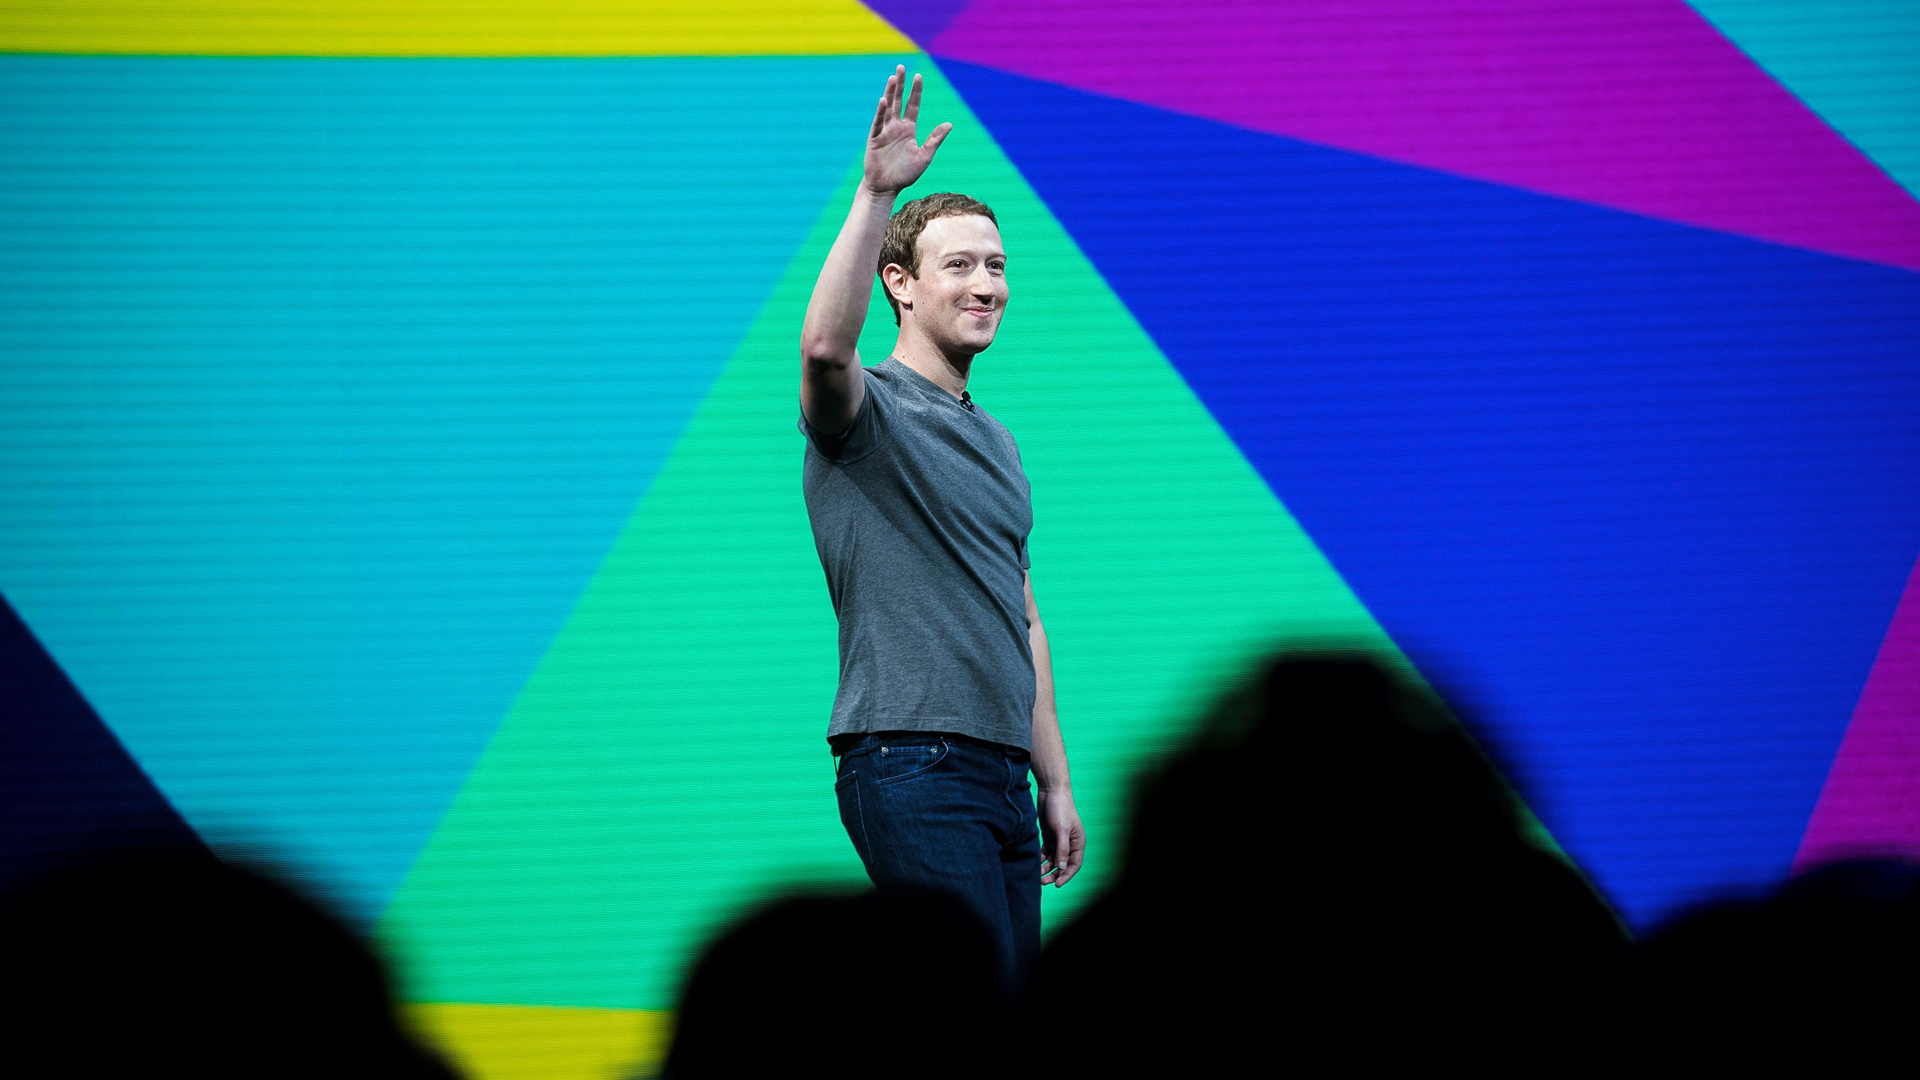 2020 in Review: The Year for Mark Zuckerberg